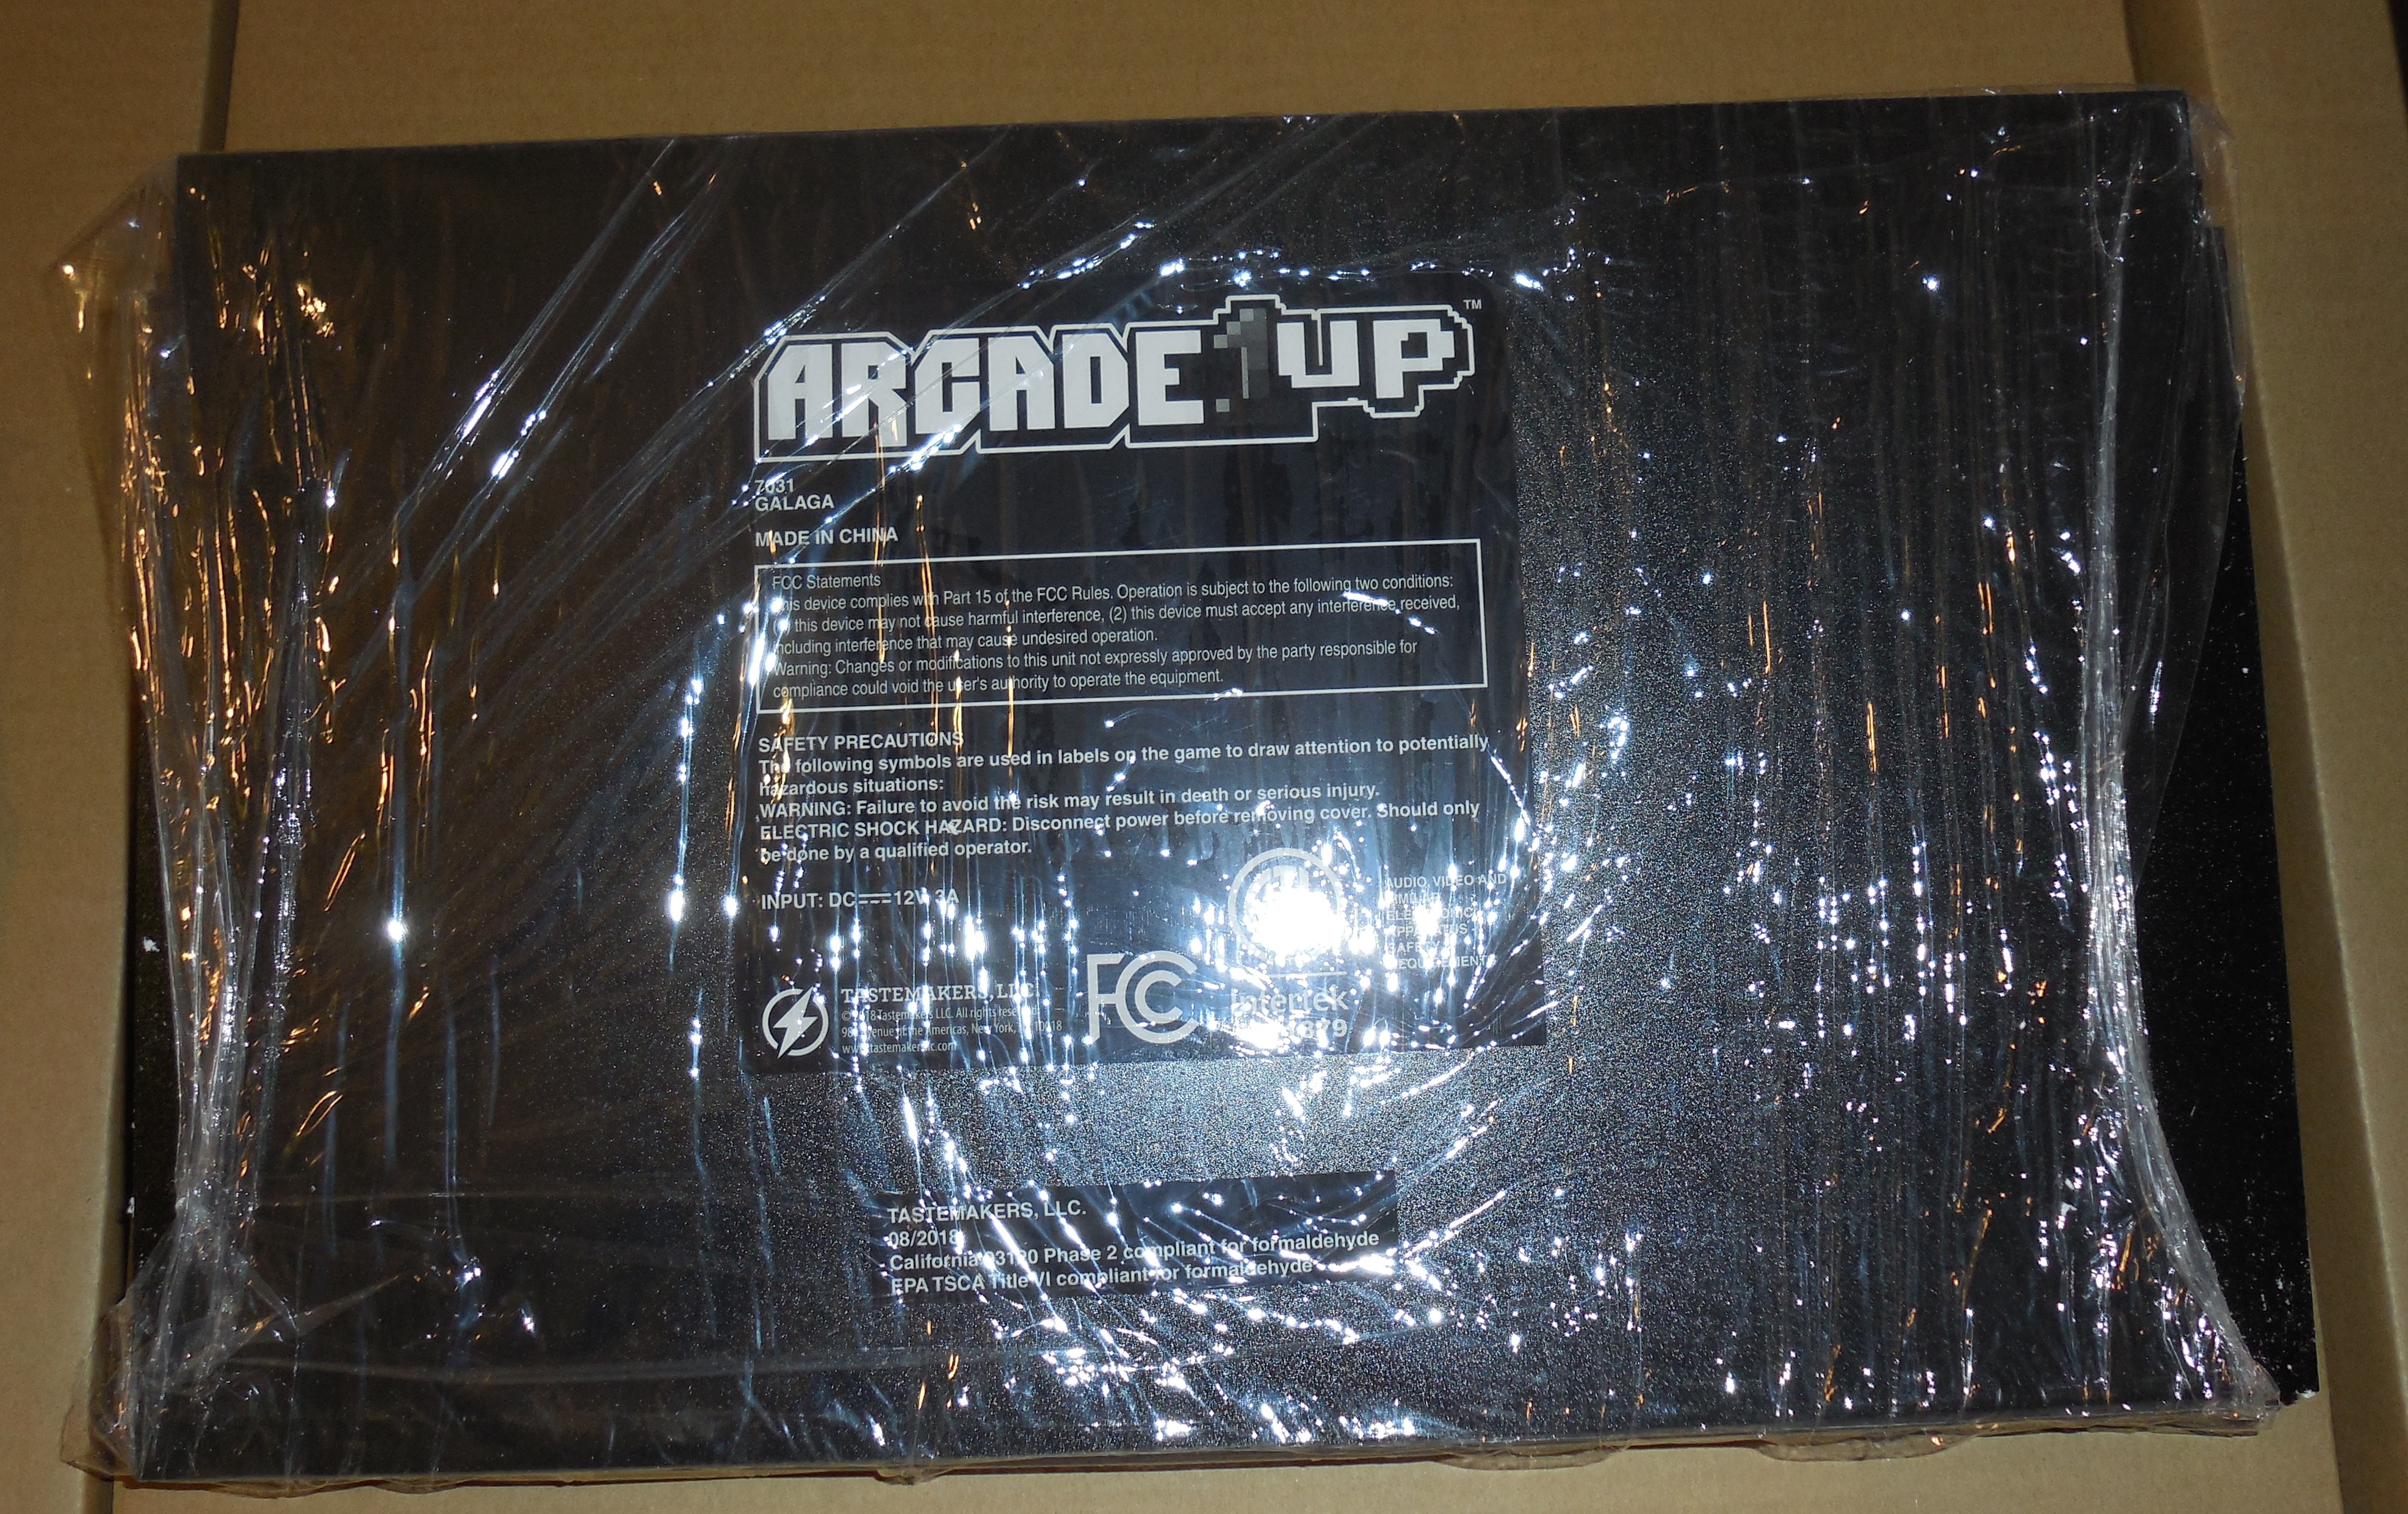 Arcade1Up Galaga Unboxing, Control Panel Modification, and Assembly